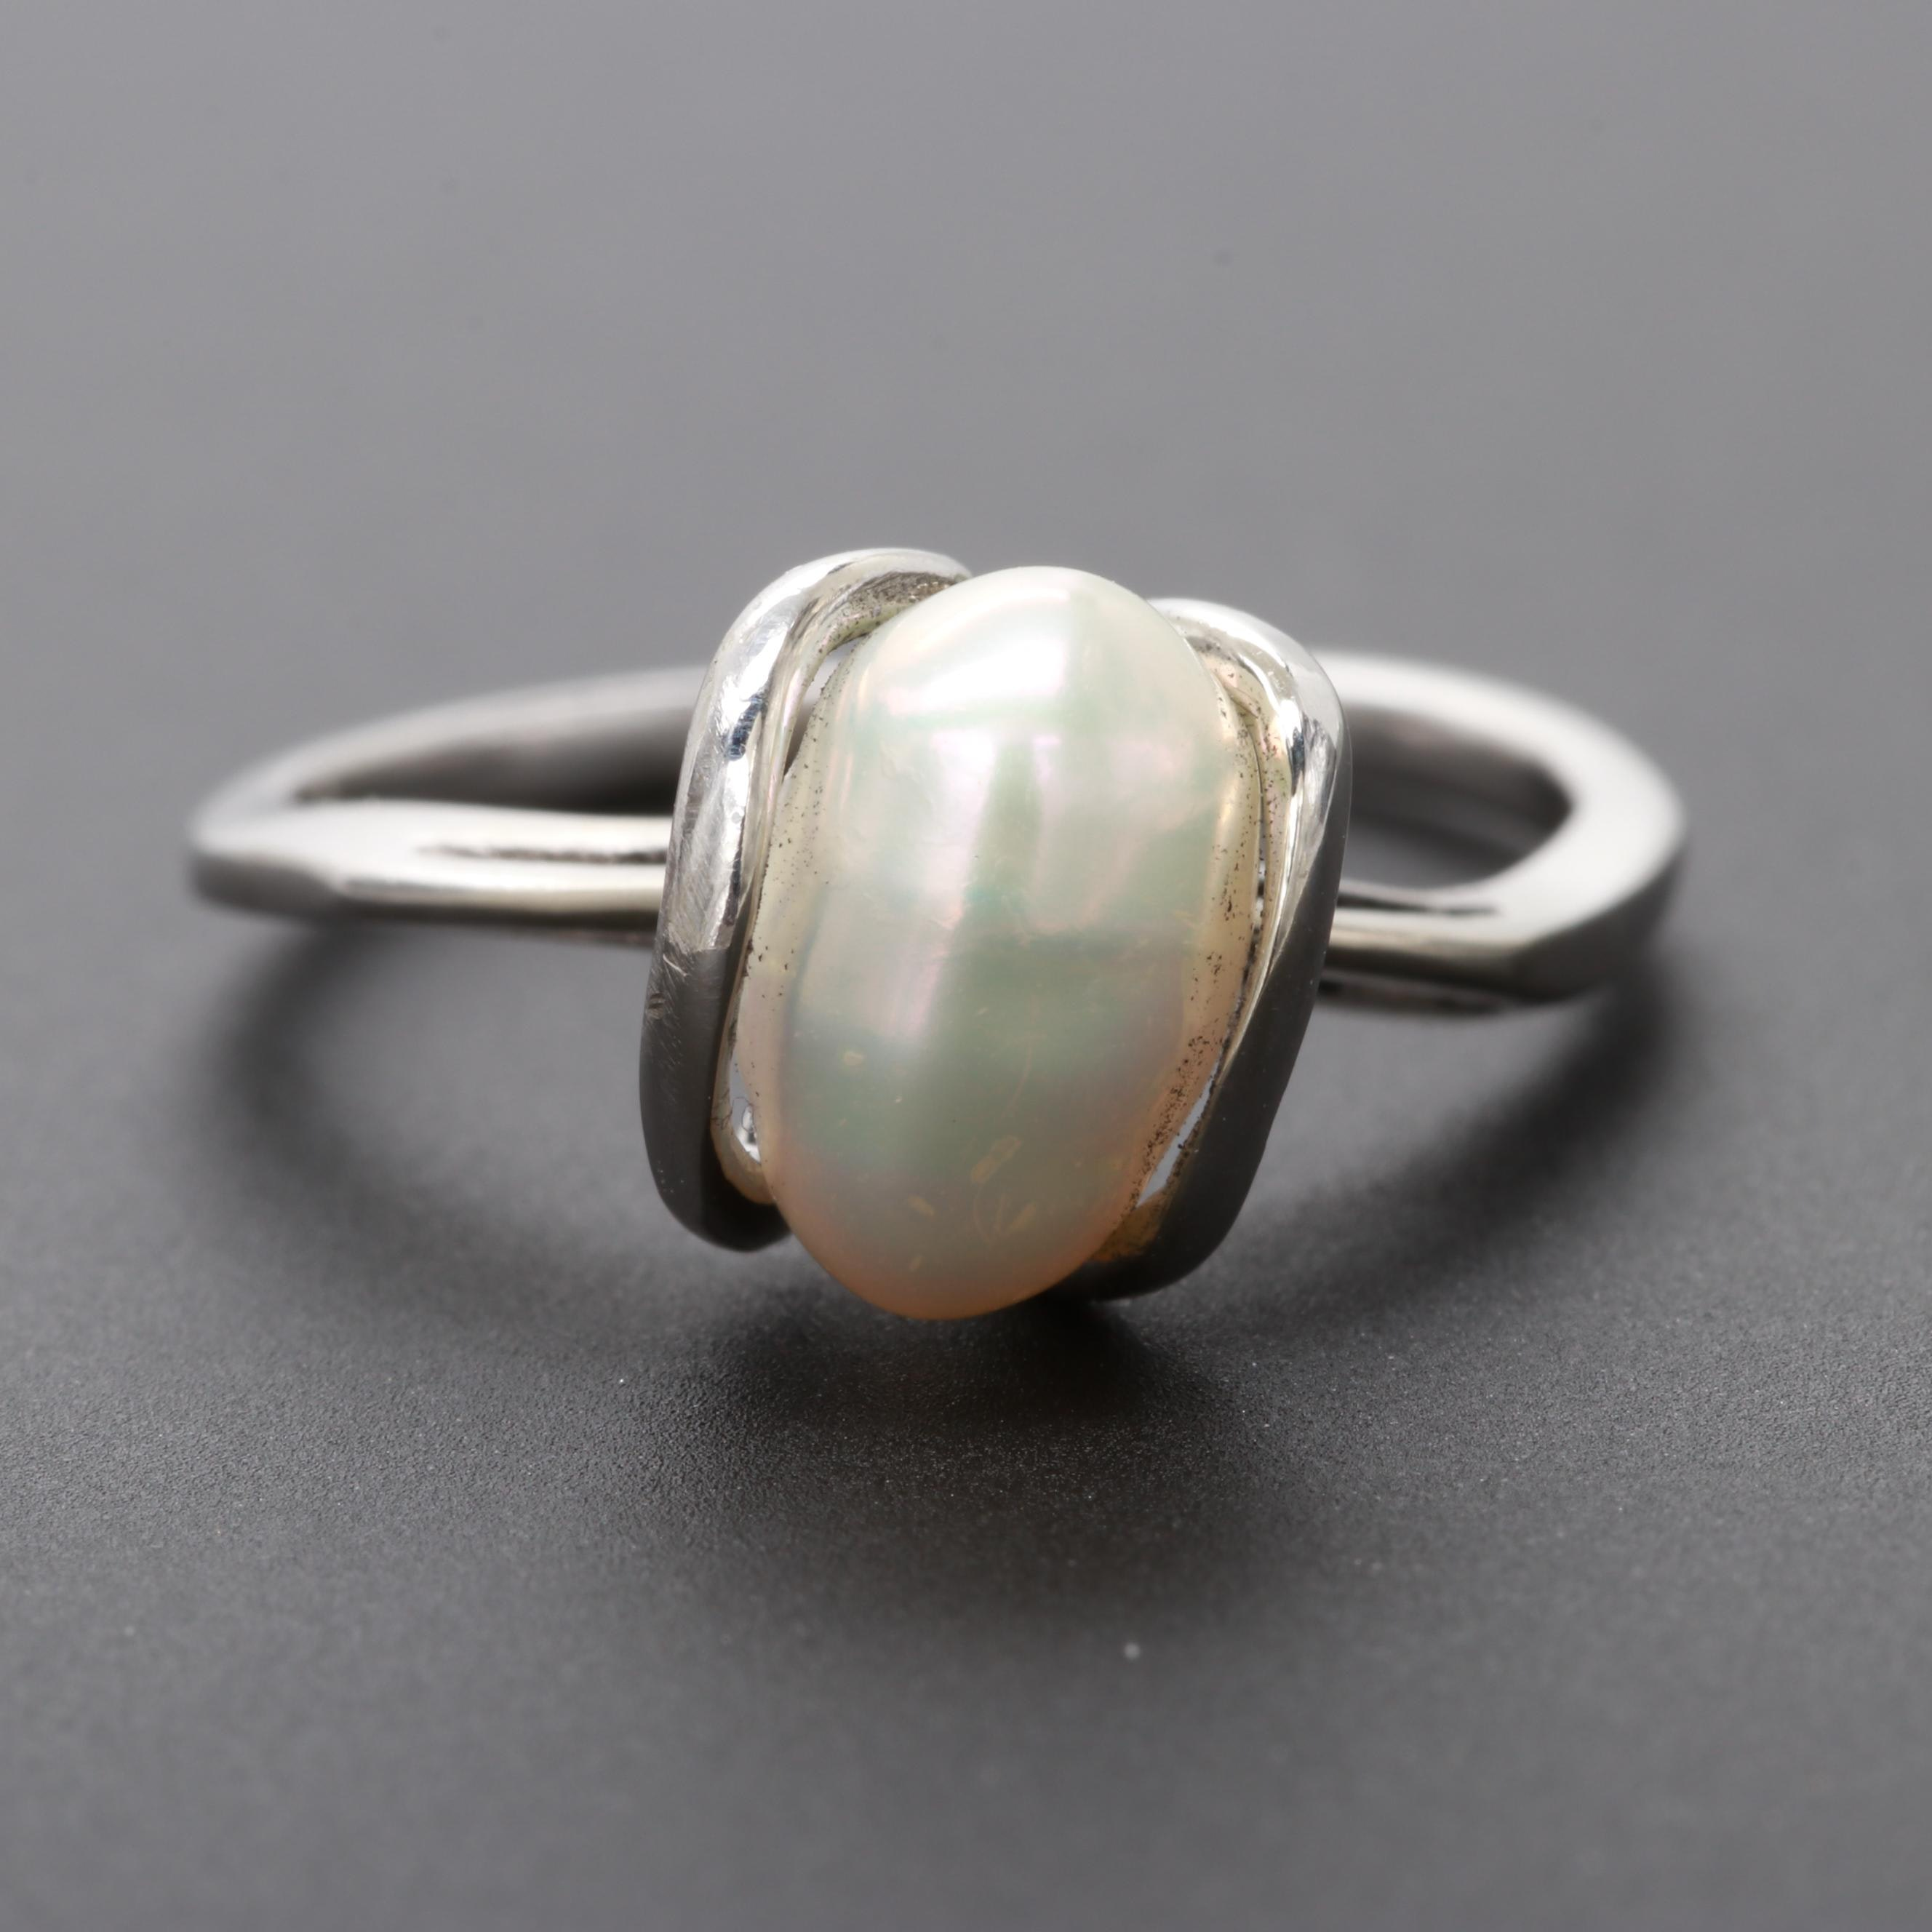 14K White Gold Cultured Pearl Ring